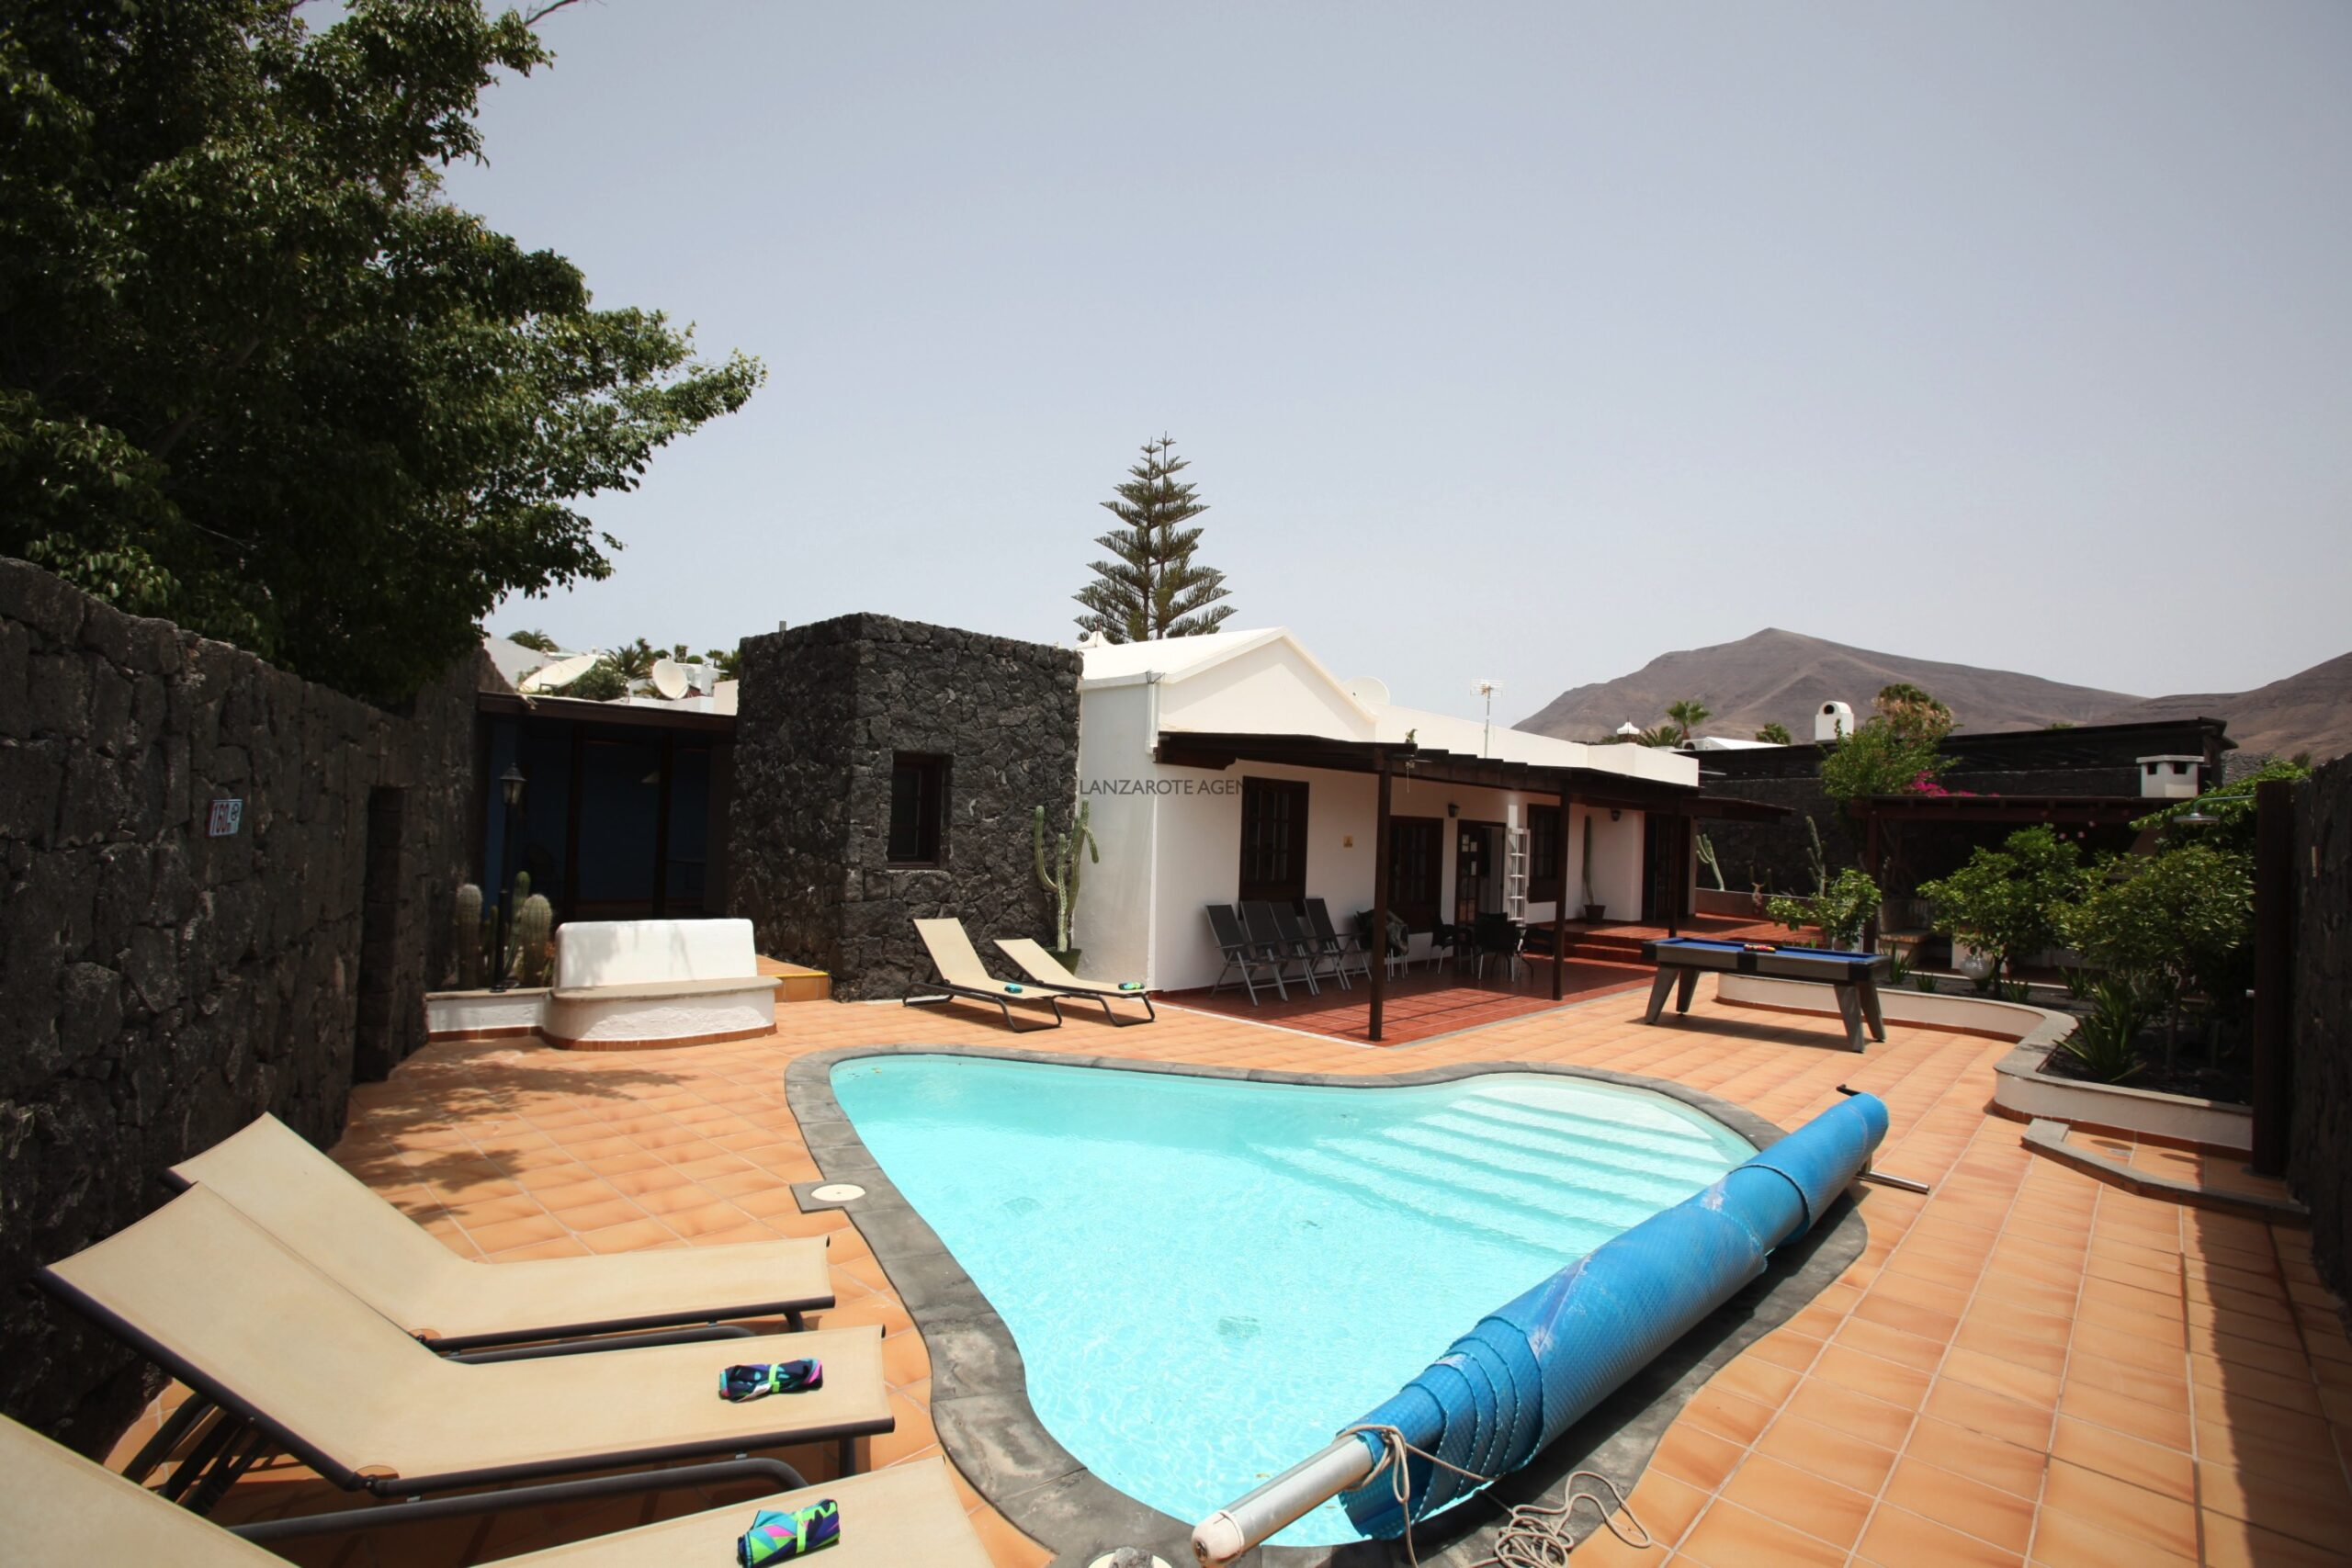 Wonderful Detached 4 bedroom Villa in Las Coloradas, with Private Pool, Self Contained Apartment,  Vv Rental License and Future Bookings.